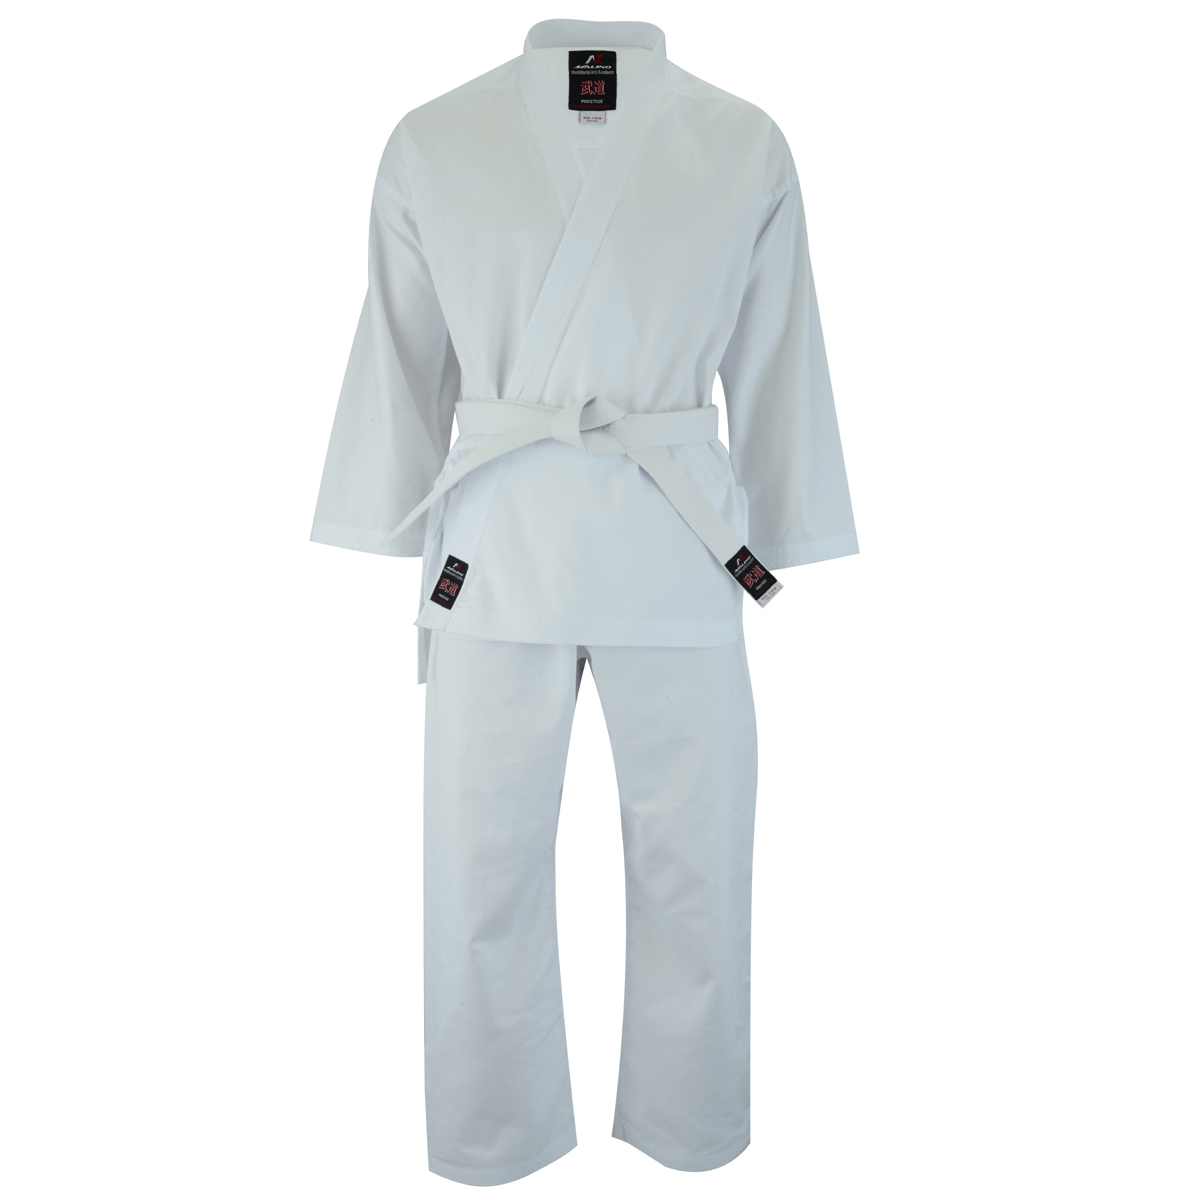 Middleweight Kids Student Karate Suit Cotton White - 8oz